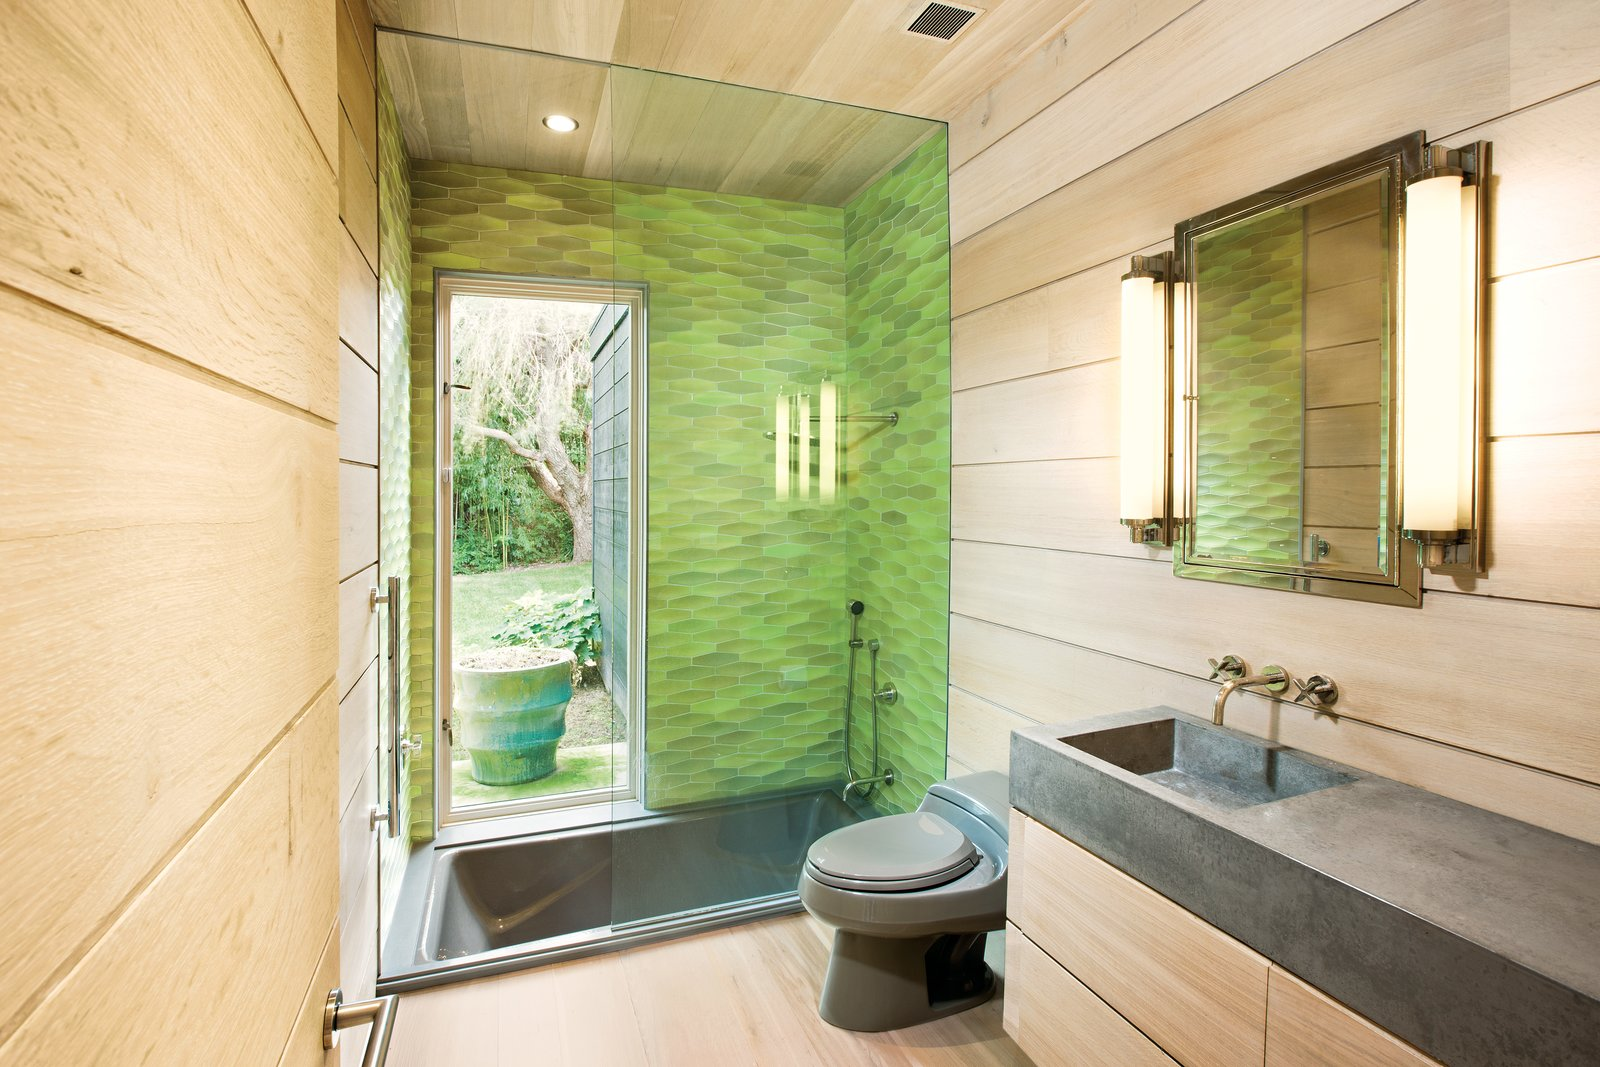 In the bathroom, Martin selected Heath Ceramics Conclave Diamond tile in citrus green for the glass-enclosed Kohler tub, which is outfitted with nickel Kallista fixtures. A matching toilet by Kohler   in the color Cashmere blends with the custom-fabricated concrete sink by Get Real Surfaces. Photo by Patrick Bernard.